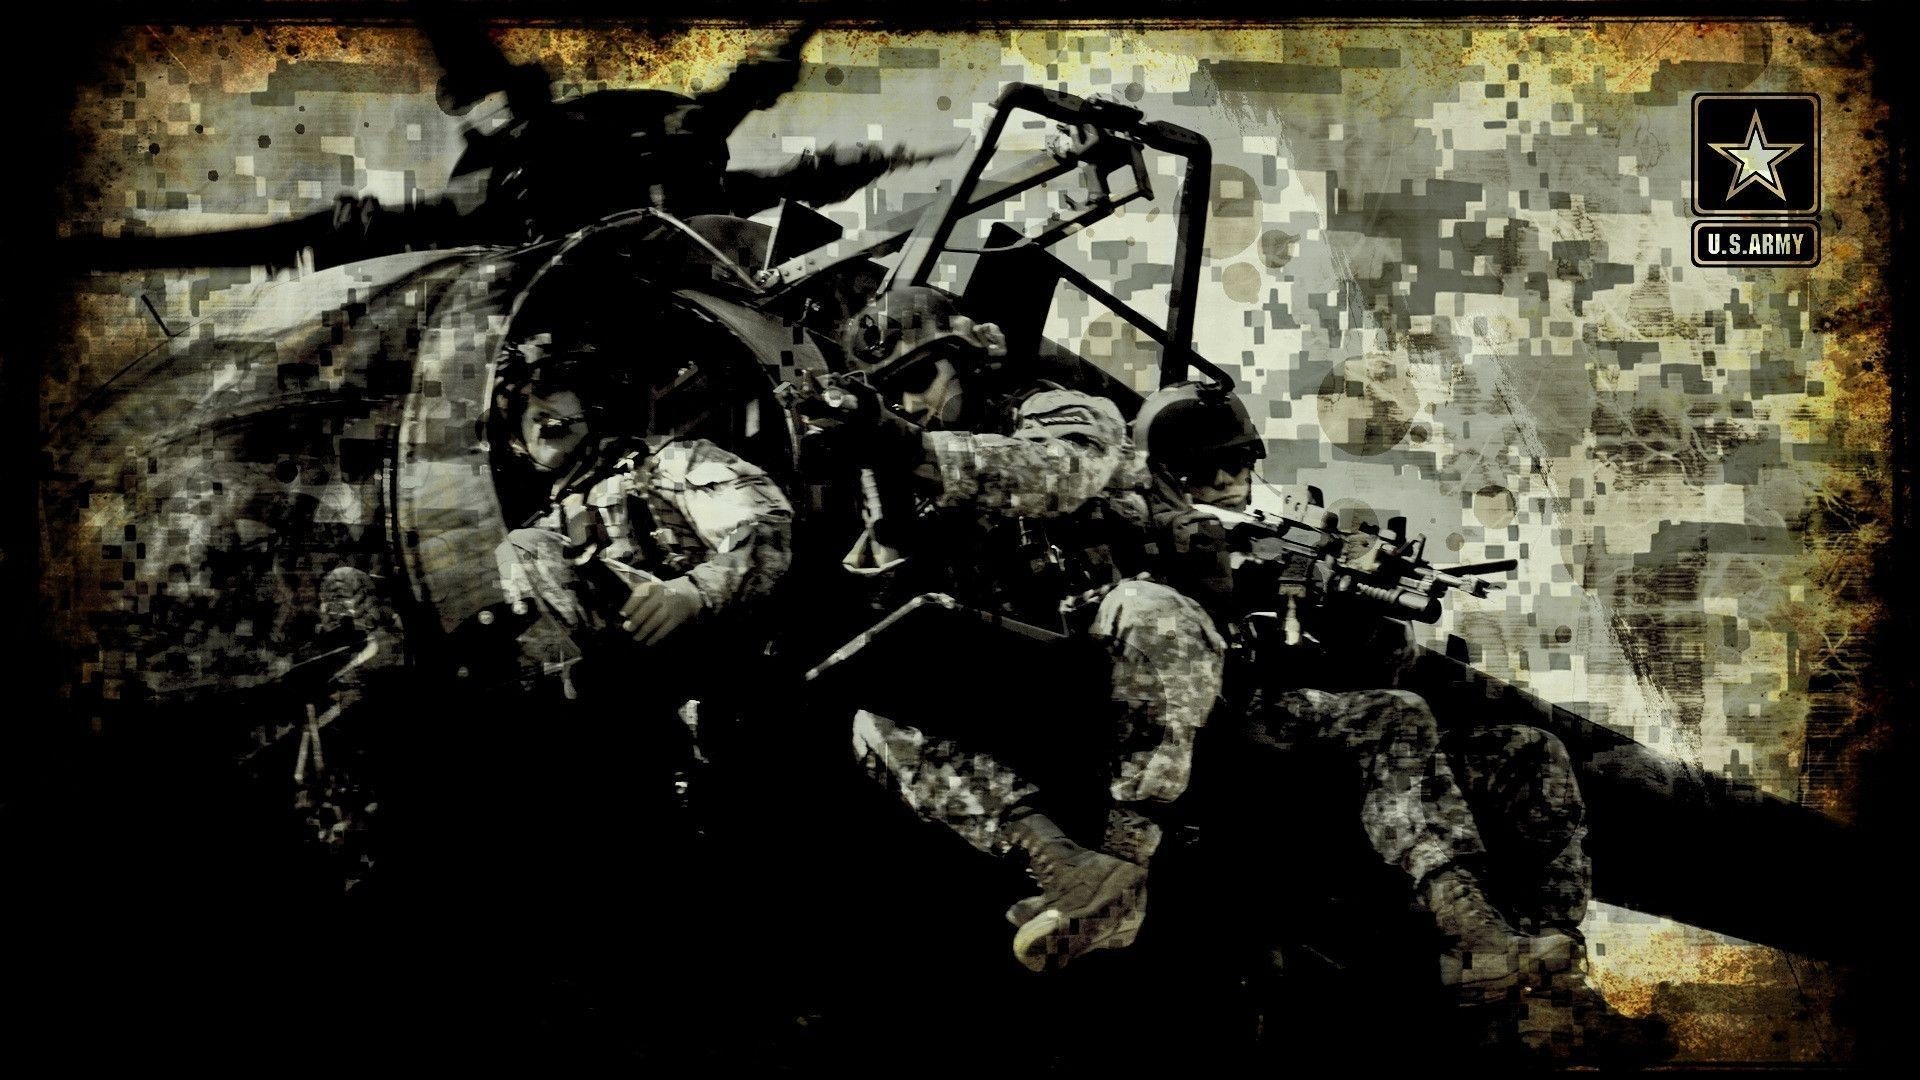 US Army Infantry Wallpaper (80+ images)